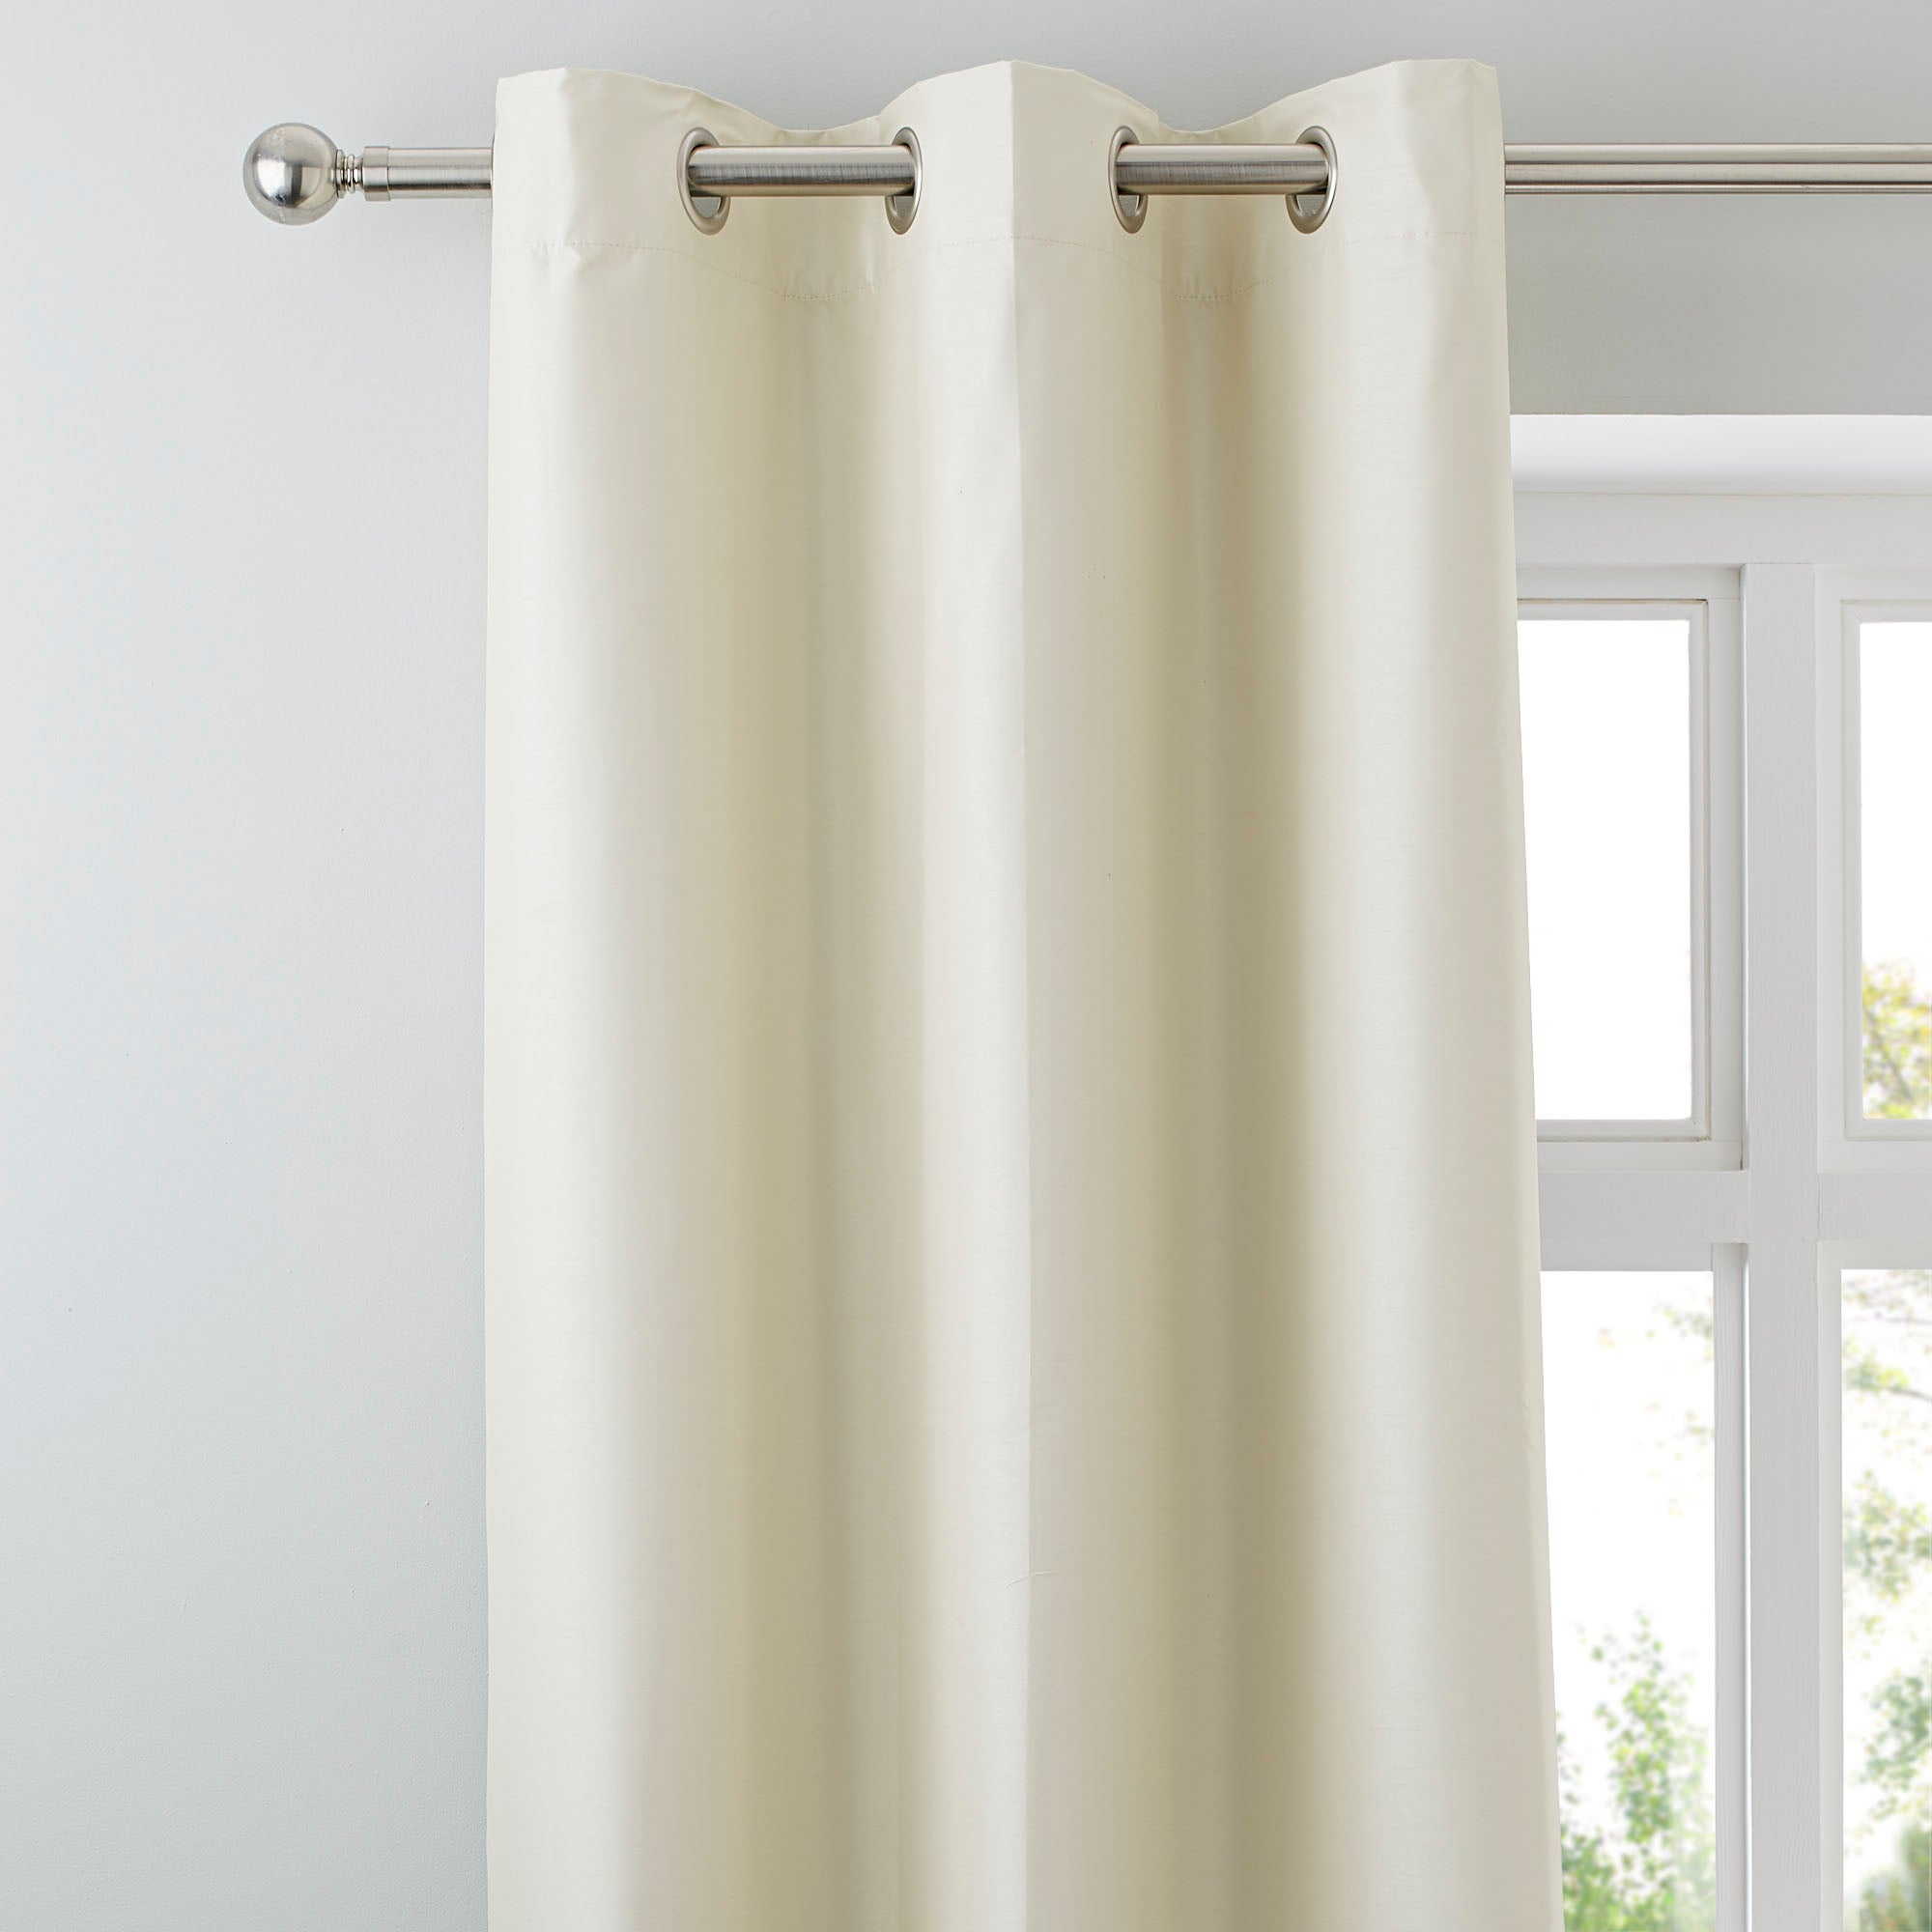 Natural Nova Blackout Lined Eyelet Curtains